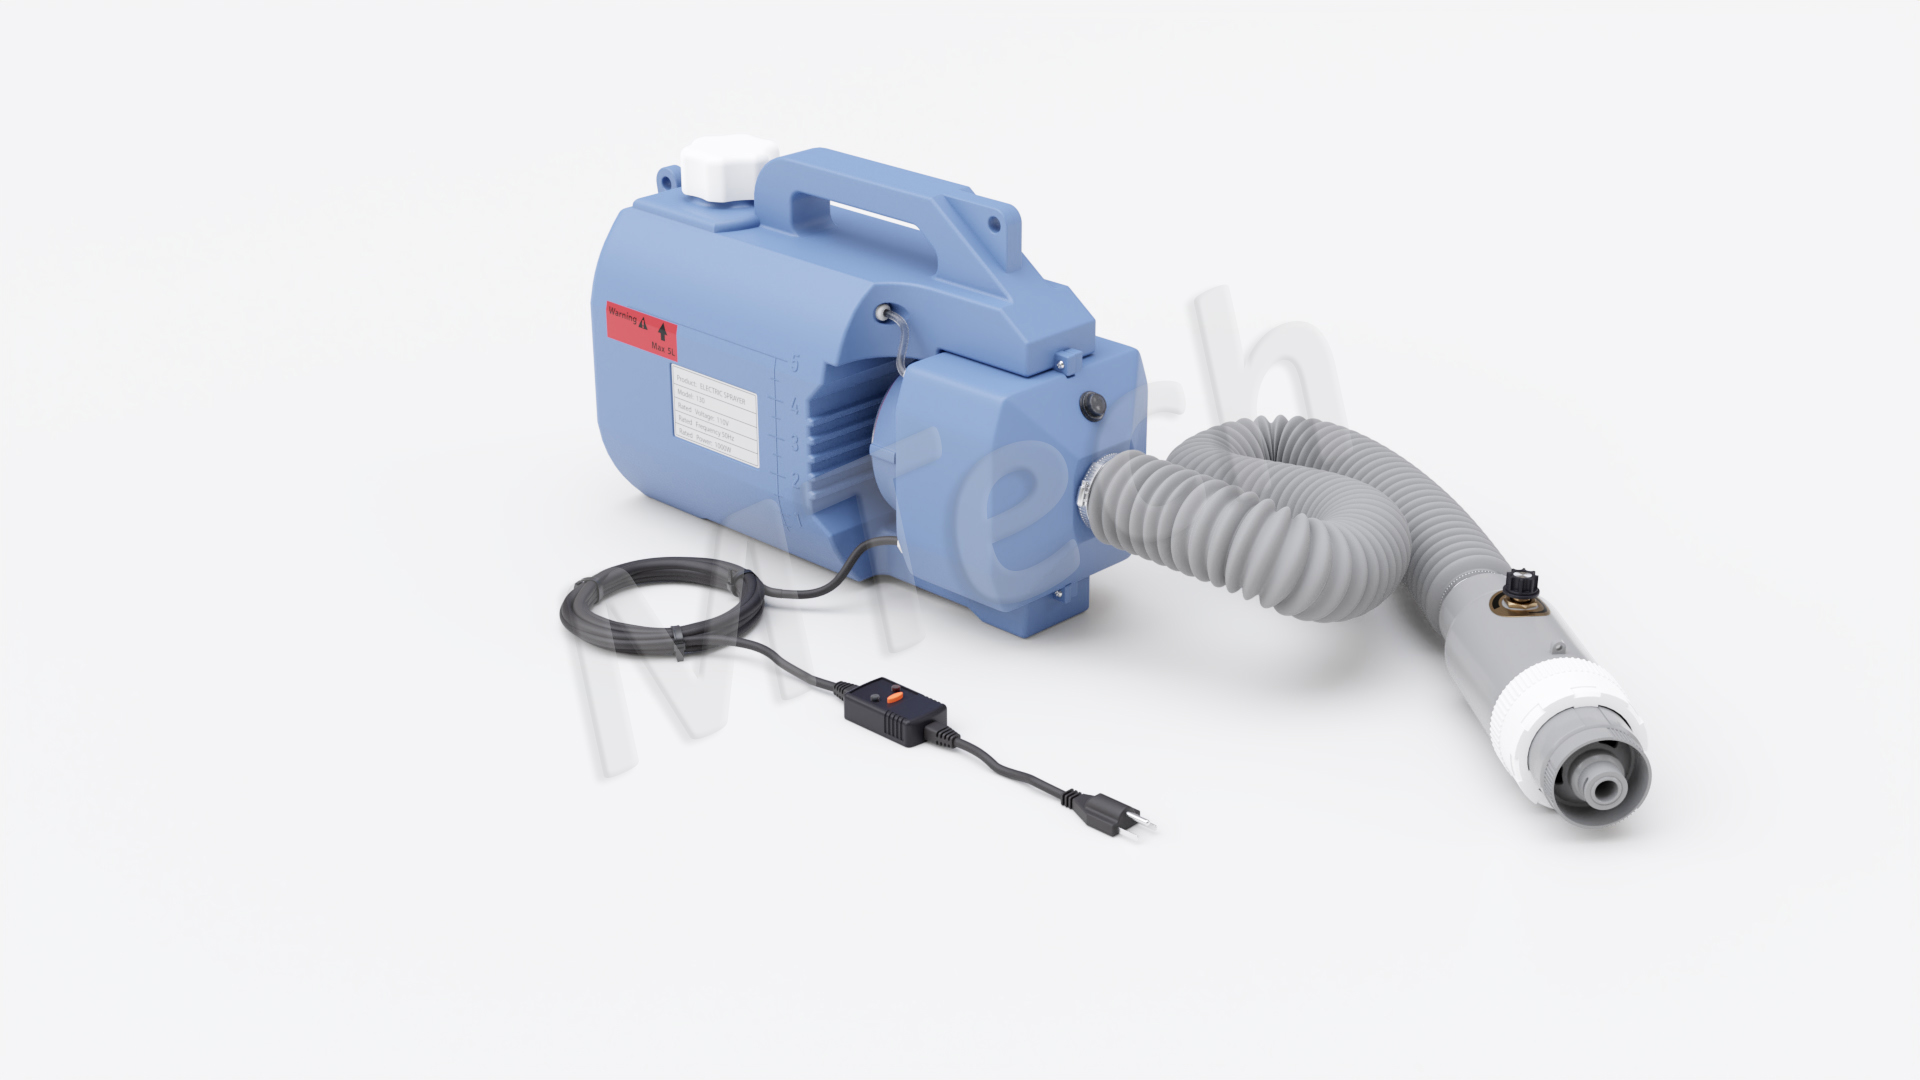 Mtech Nano Disinfector Cold Fogger Blue Model M5